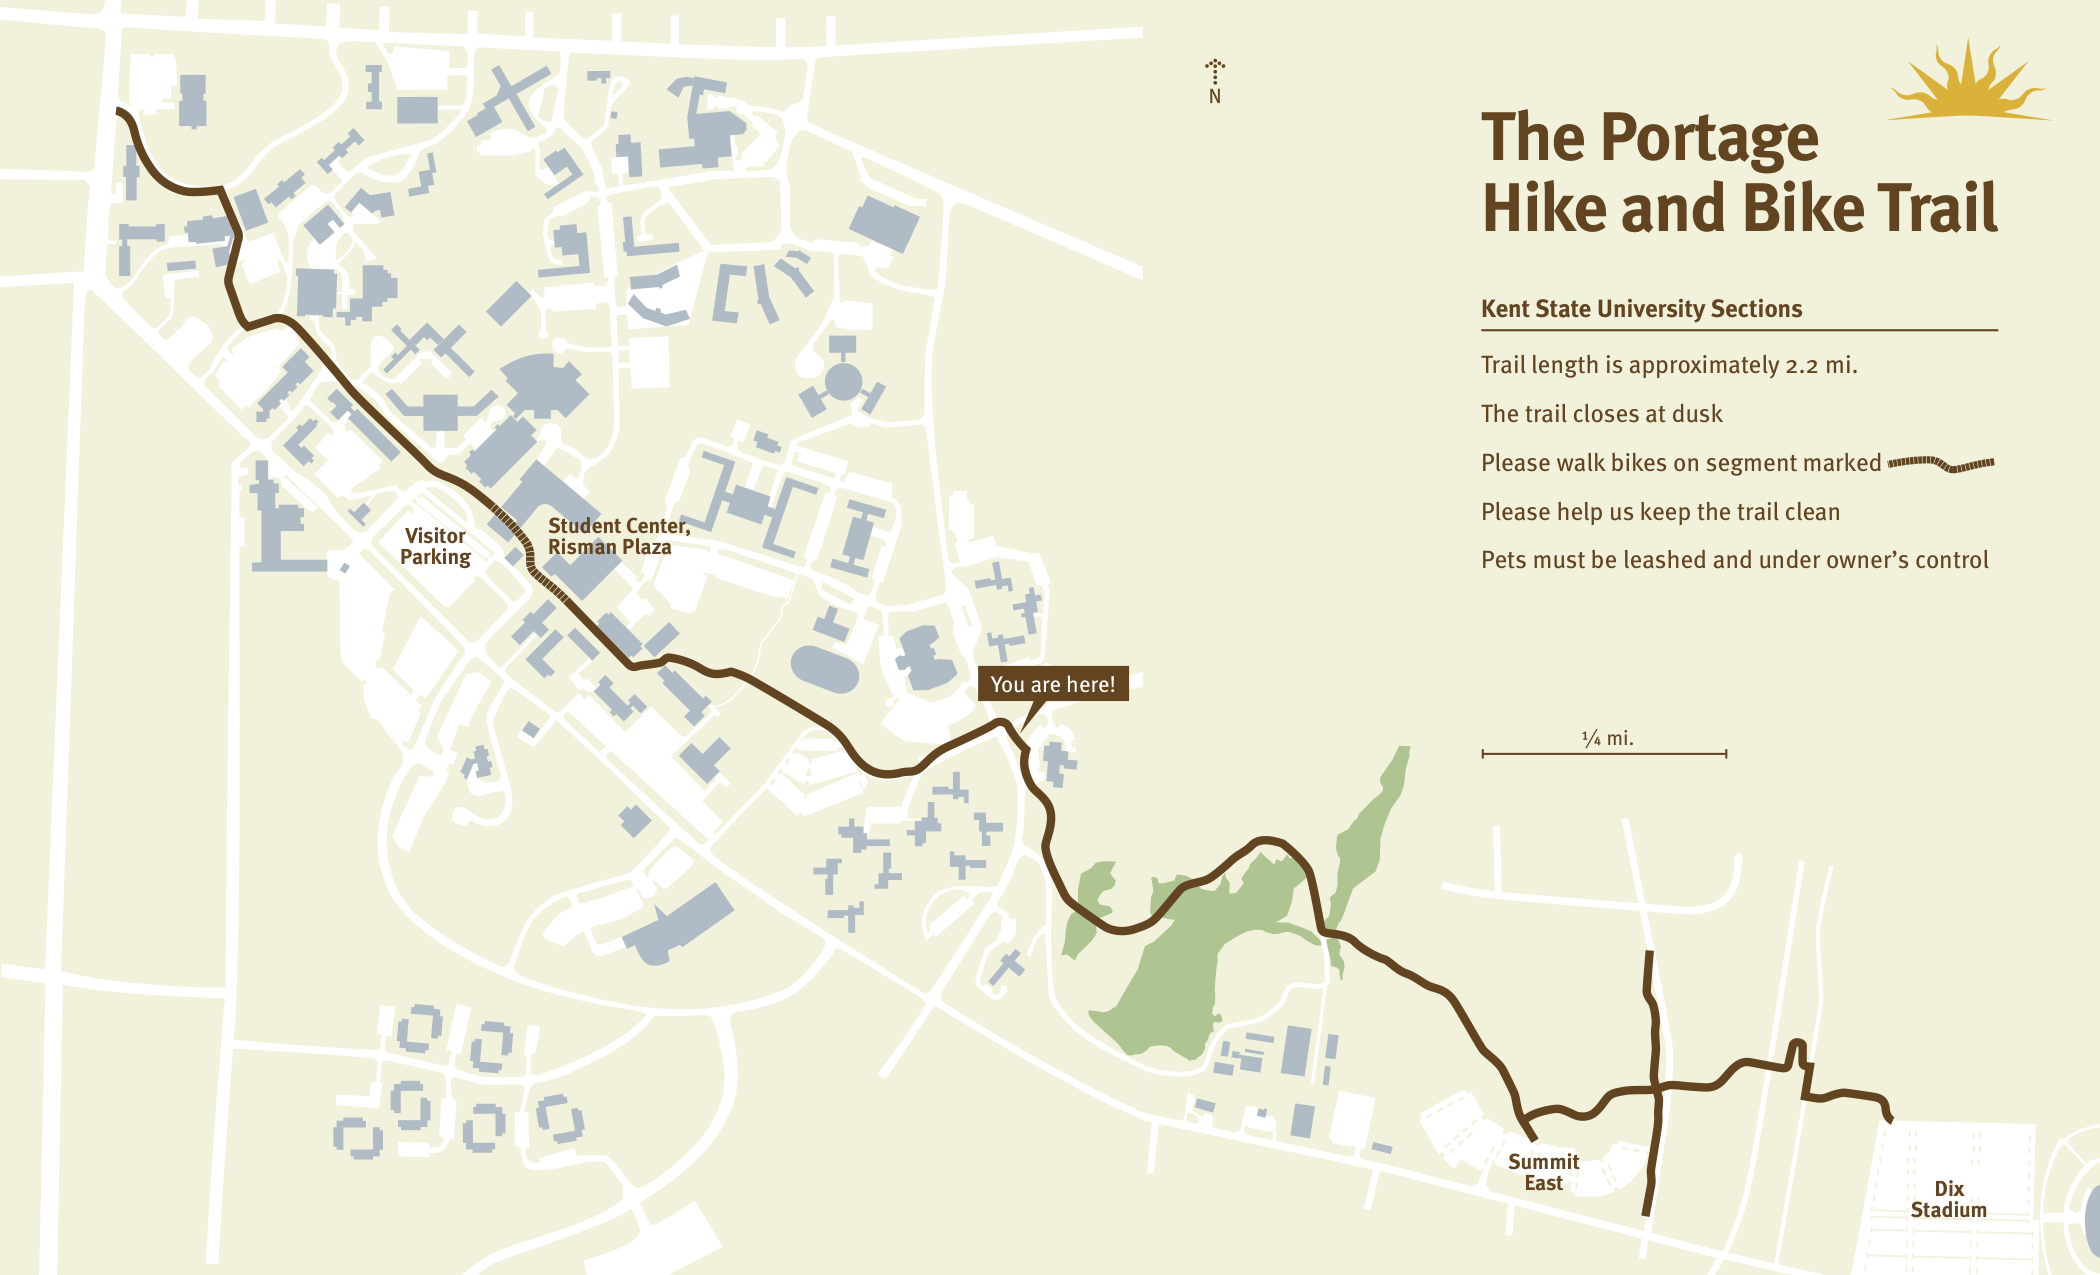 Map of the Portage hike and bike trail's Kent State campus section